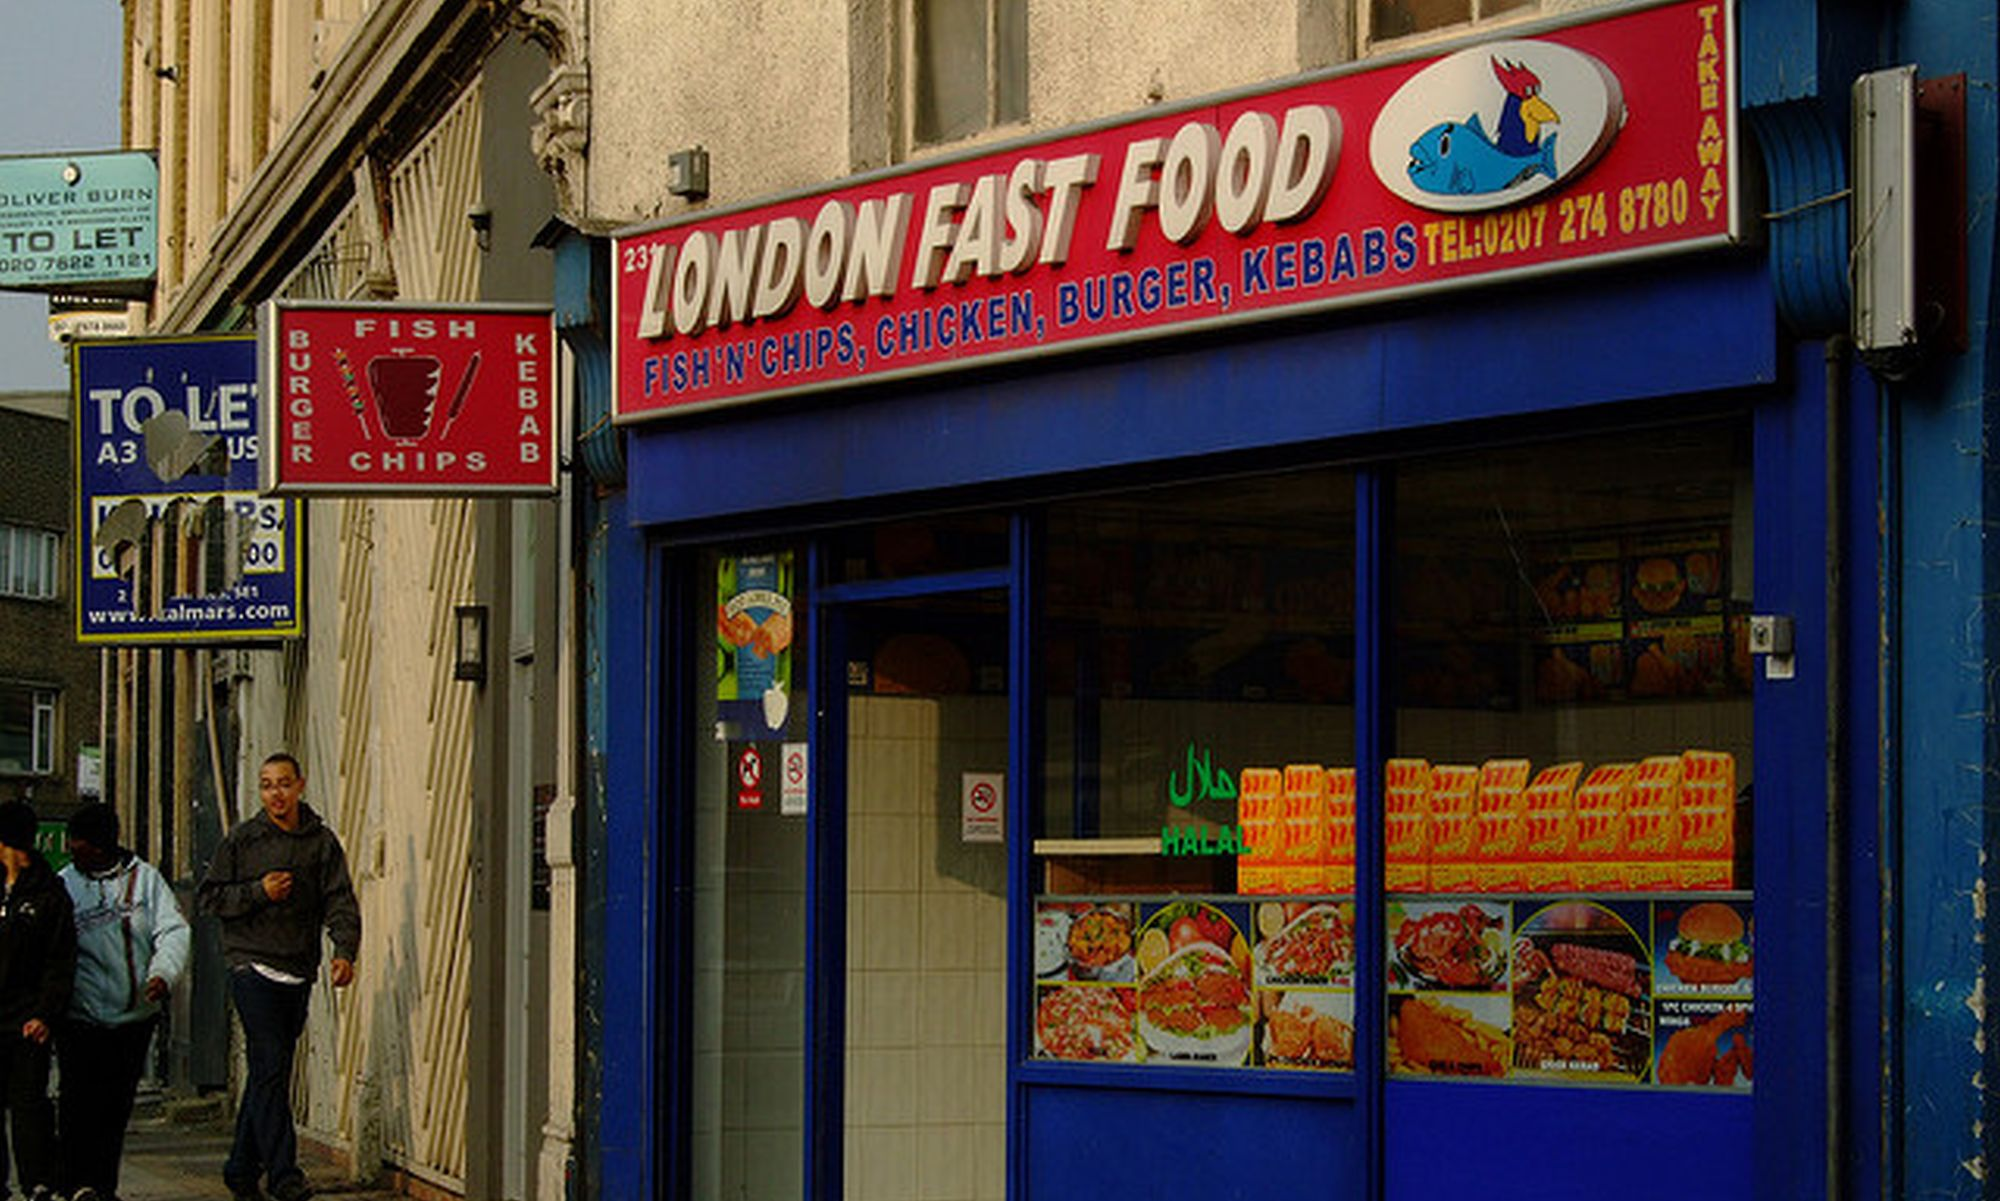 CHILDREN IN POORER AREAS EXPOSED TO FIVE TIMES MORE FAST FOOD -